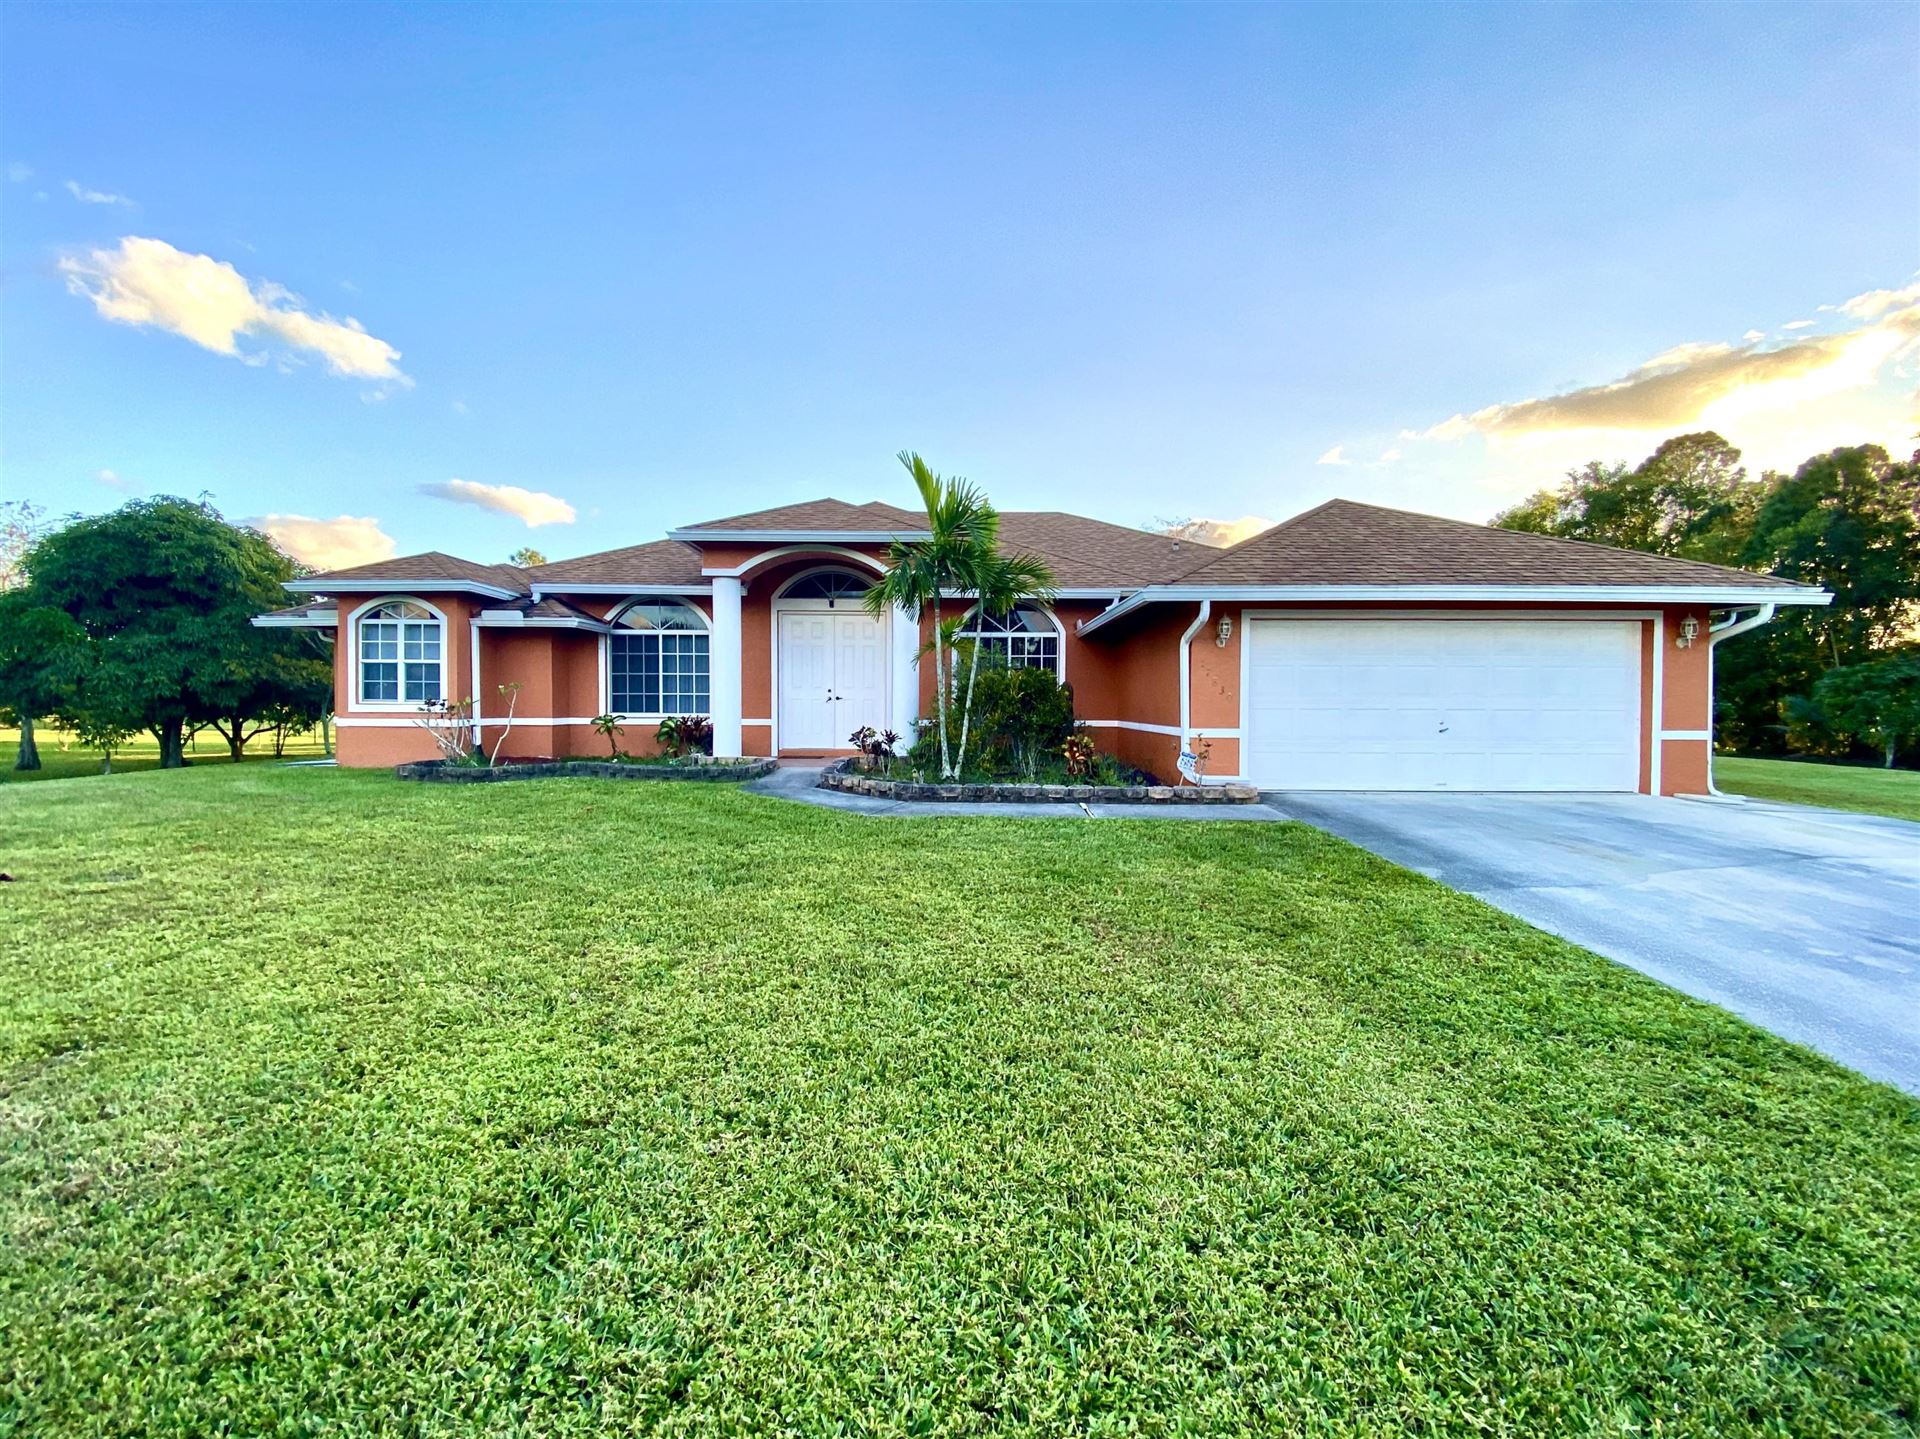 17830 Orange Grove Boulevard, Loxahatchee, FL 33470 - #: RX-10673967